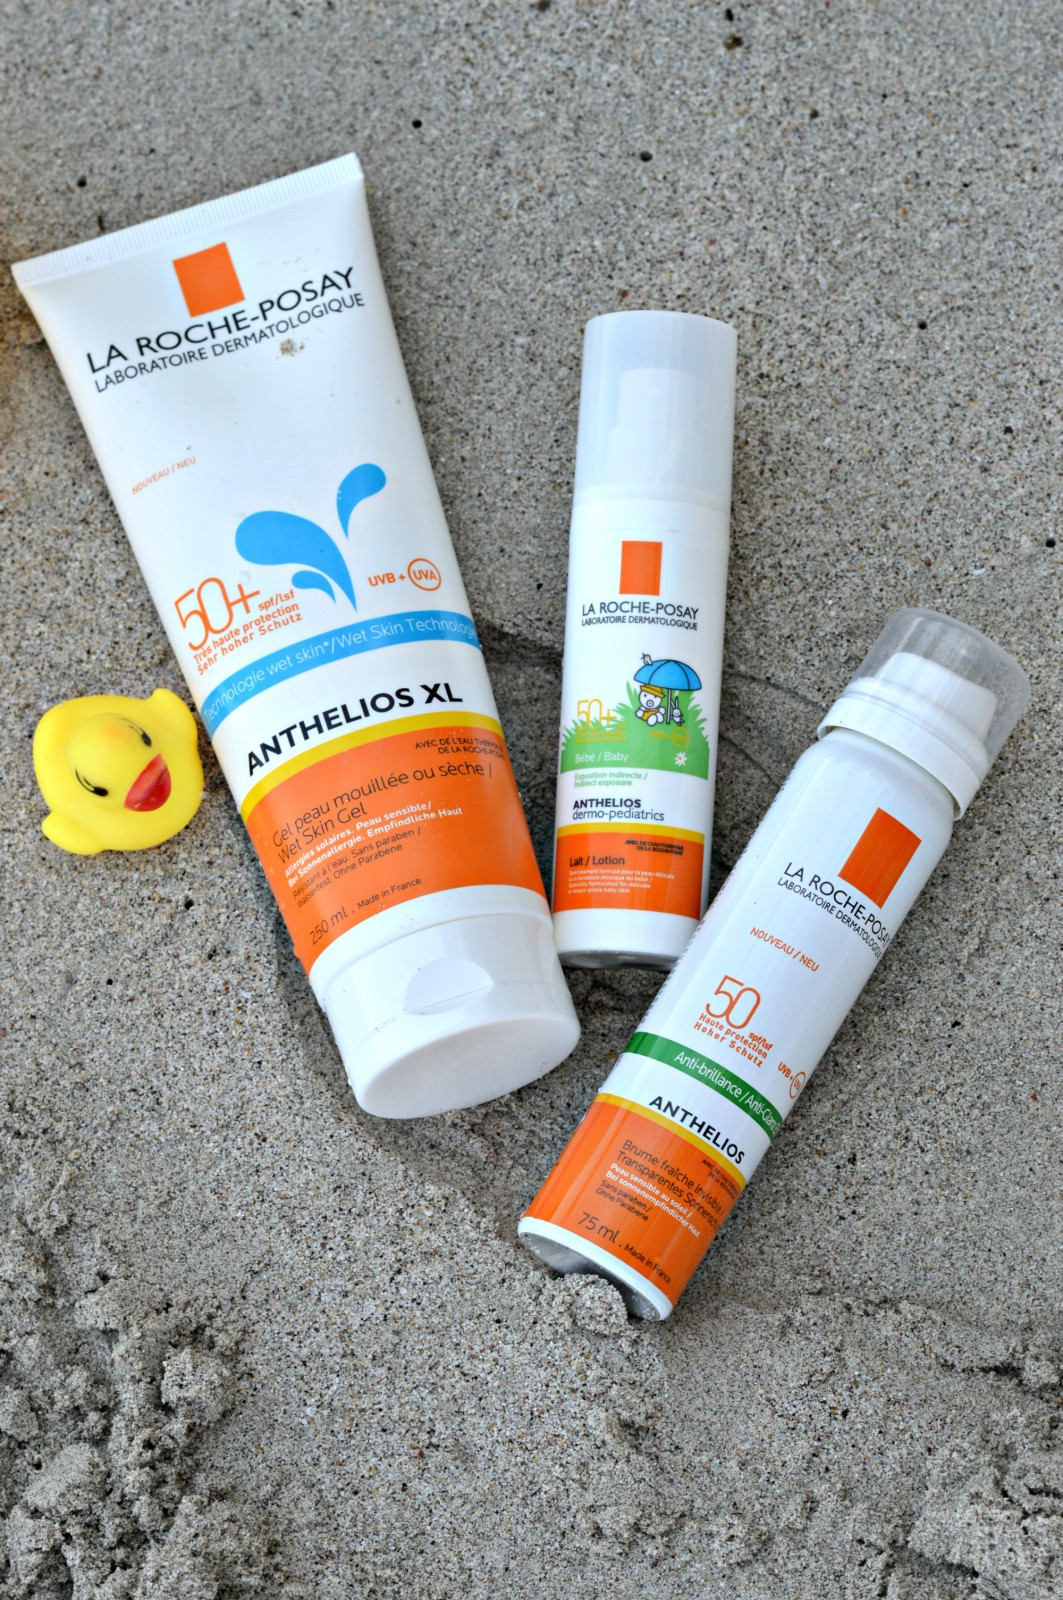 La Roche-Posay sunscreen_Anthelios_currently wearing_blog mode